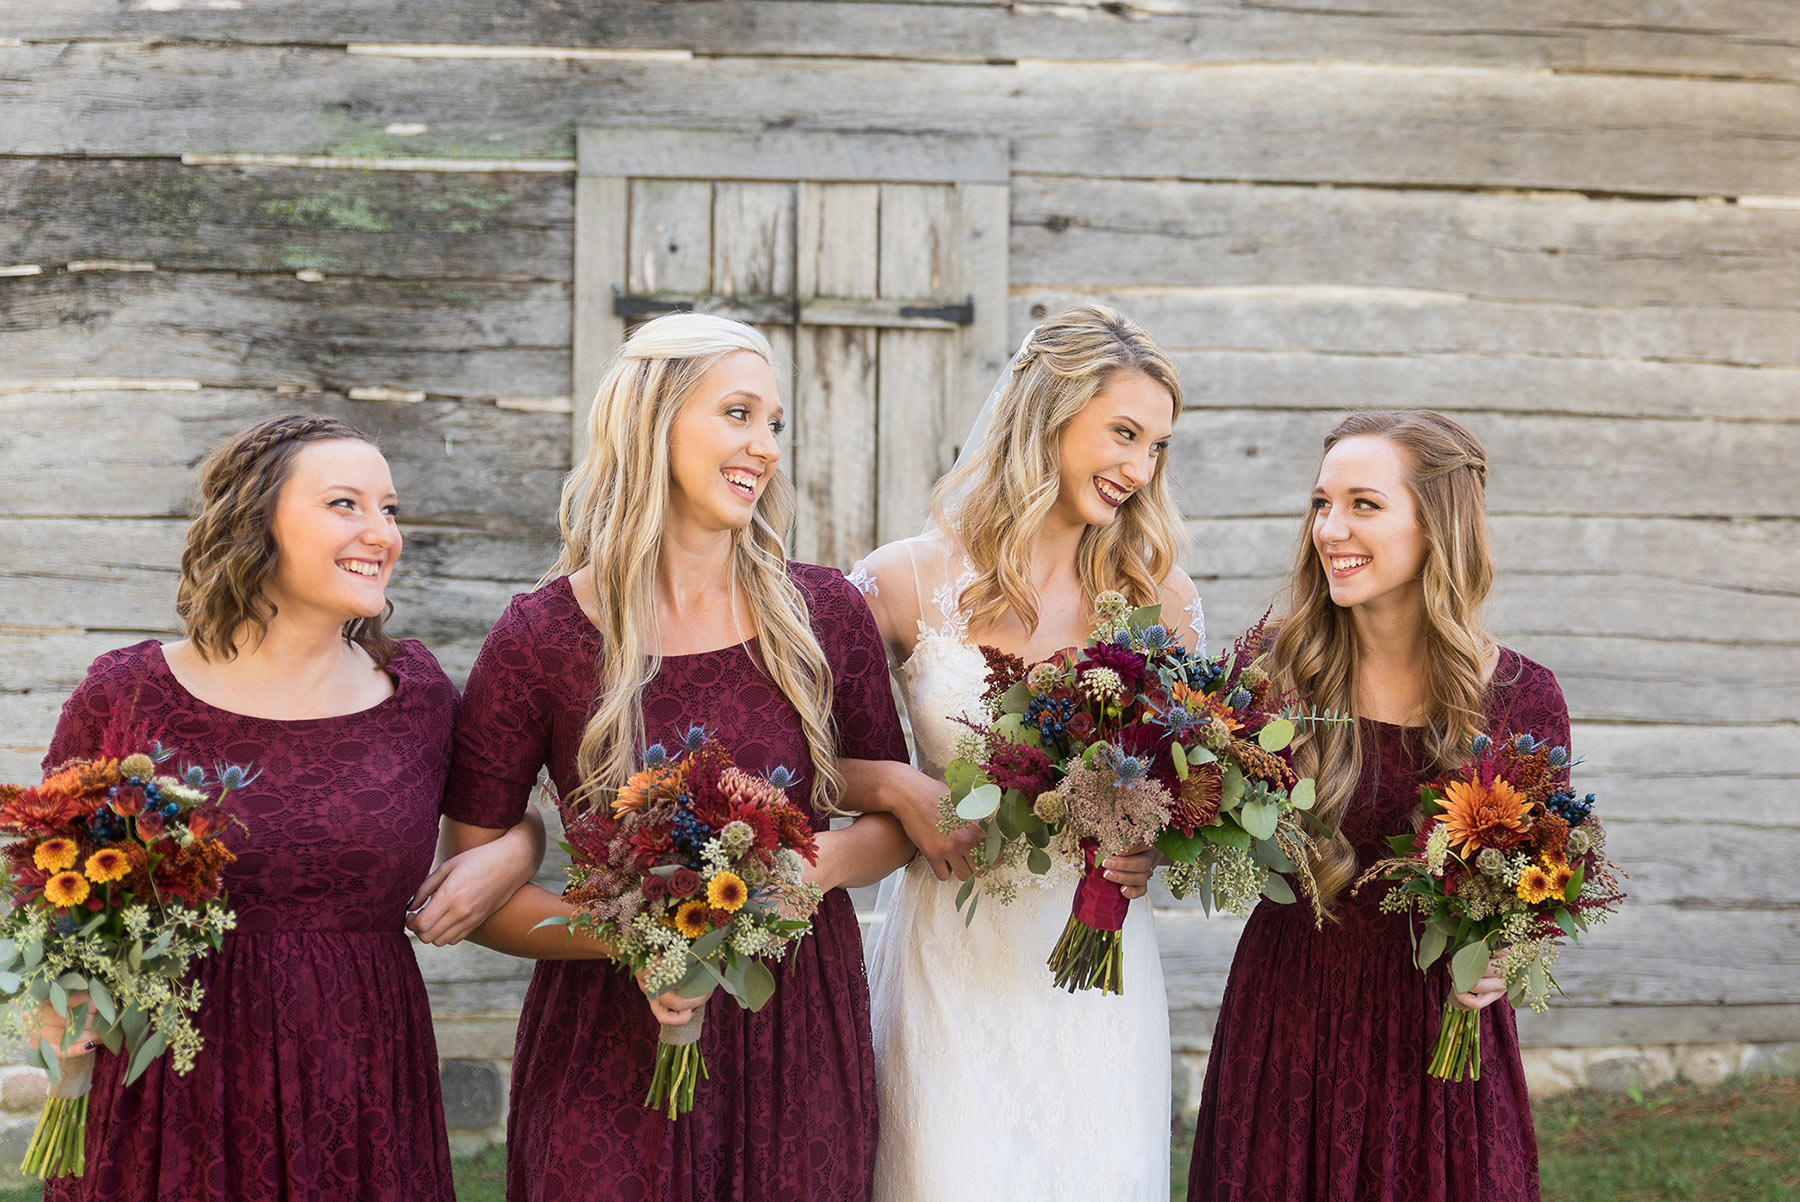 Copy of Bride and Bridesmaids in Maroon Bridesmaid Dresses on Wedding Day  |  Life & Art Photography  |  Destination Wedding Photographer